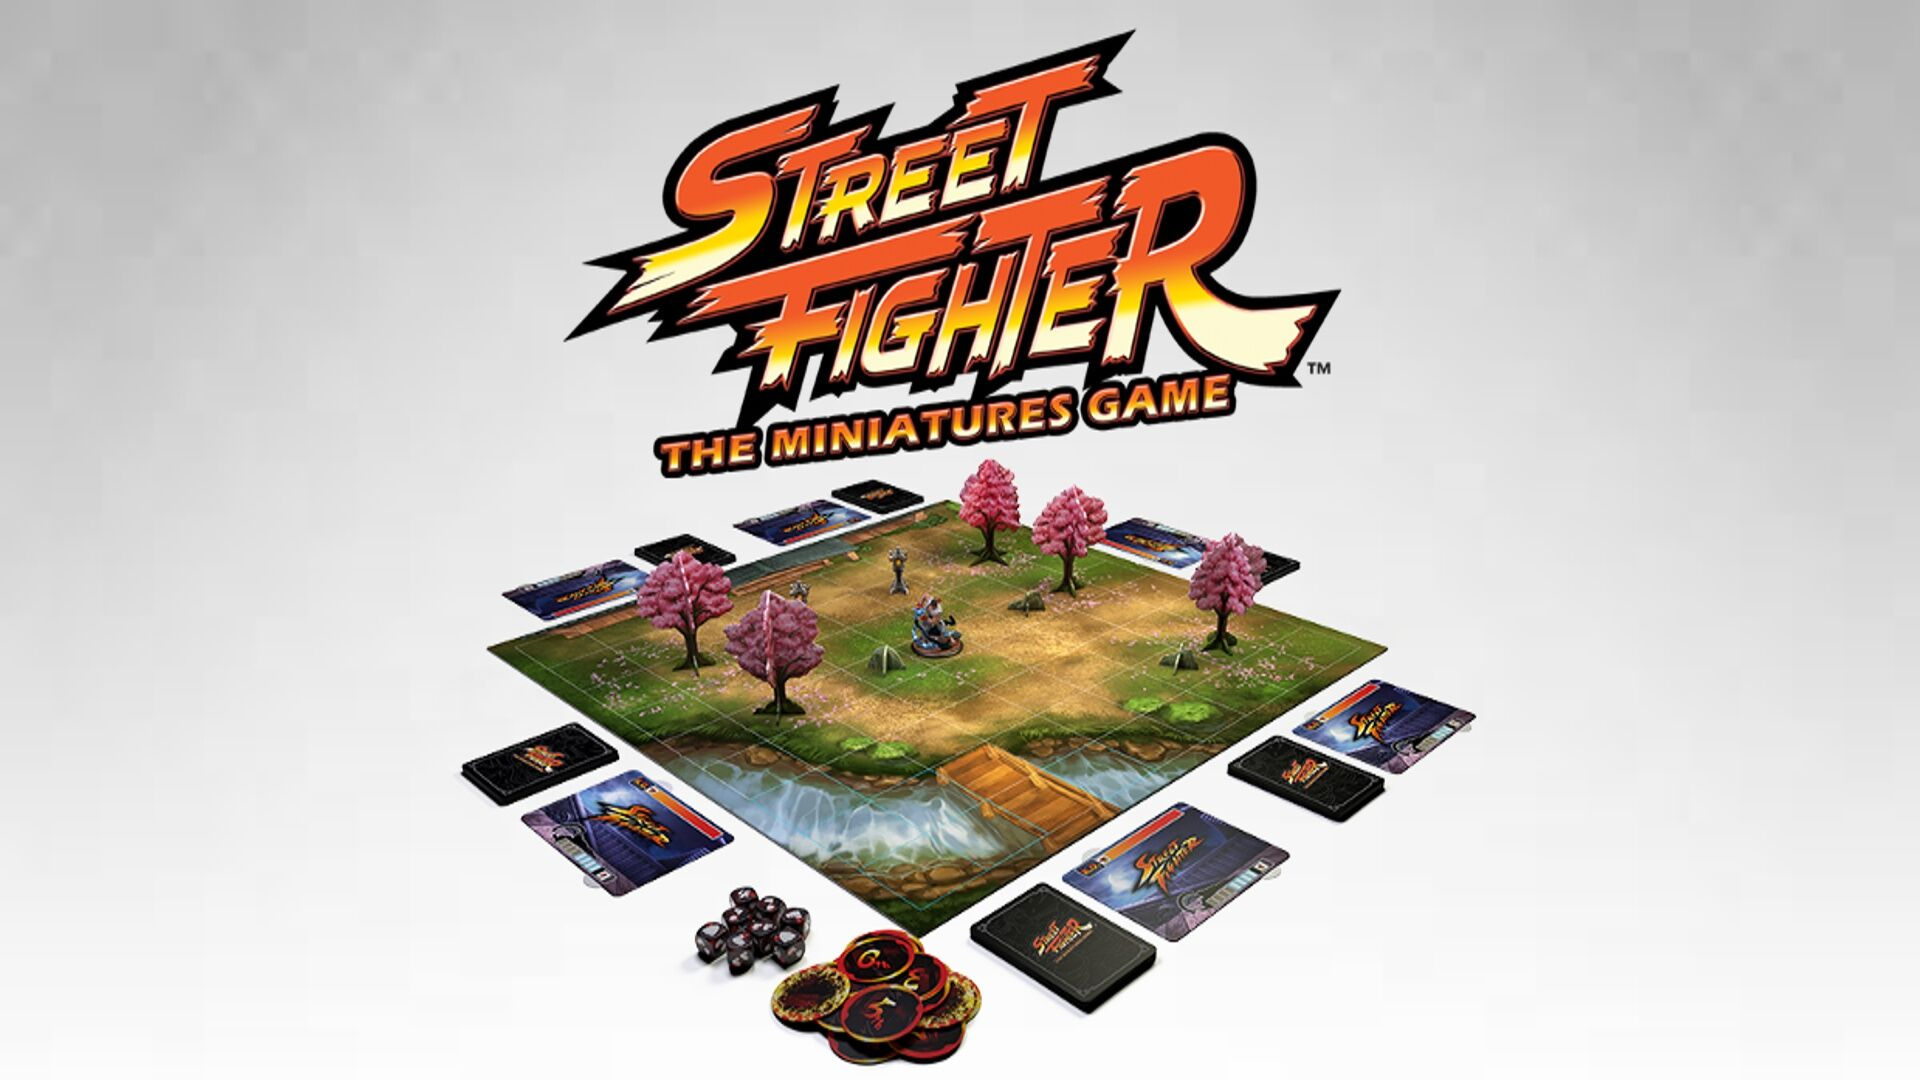 Wie funktioniert Street Fighter als Brettspiel? (Foto: Jasco Games)